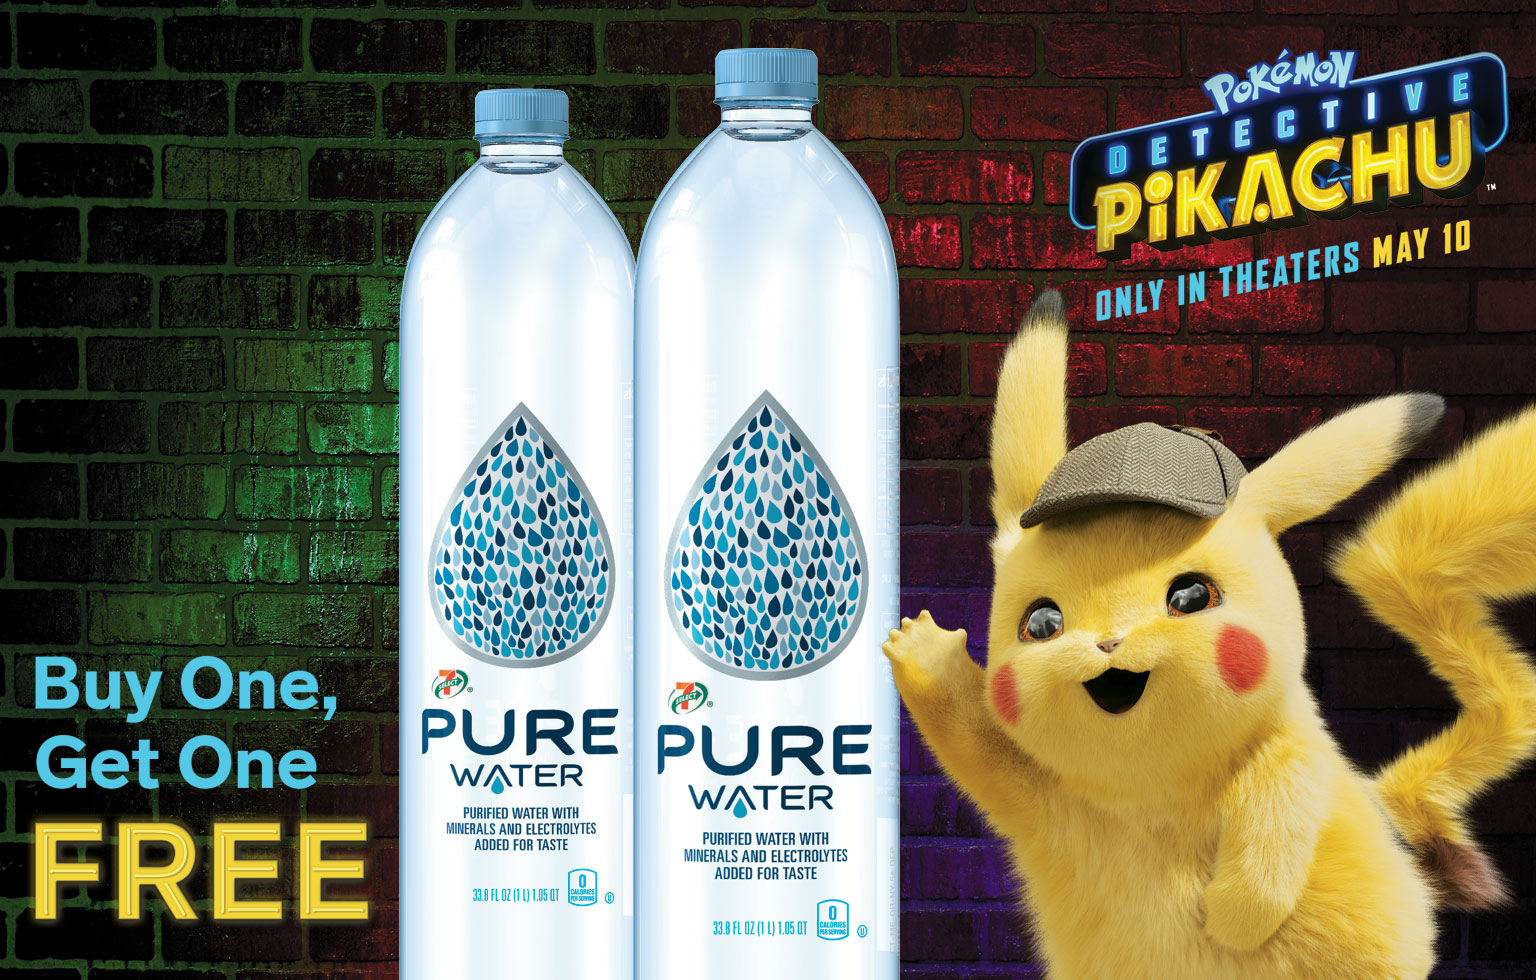 Buy One, Get One FREE - Pure water